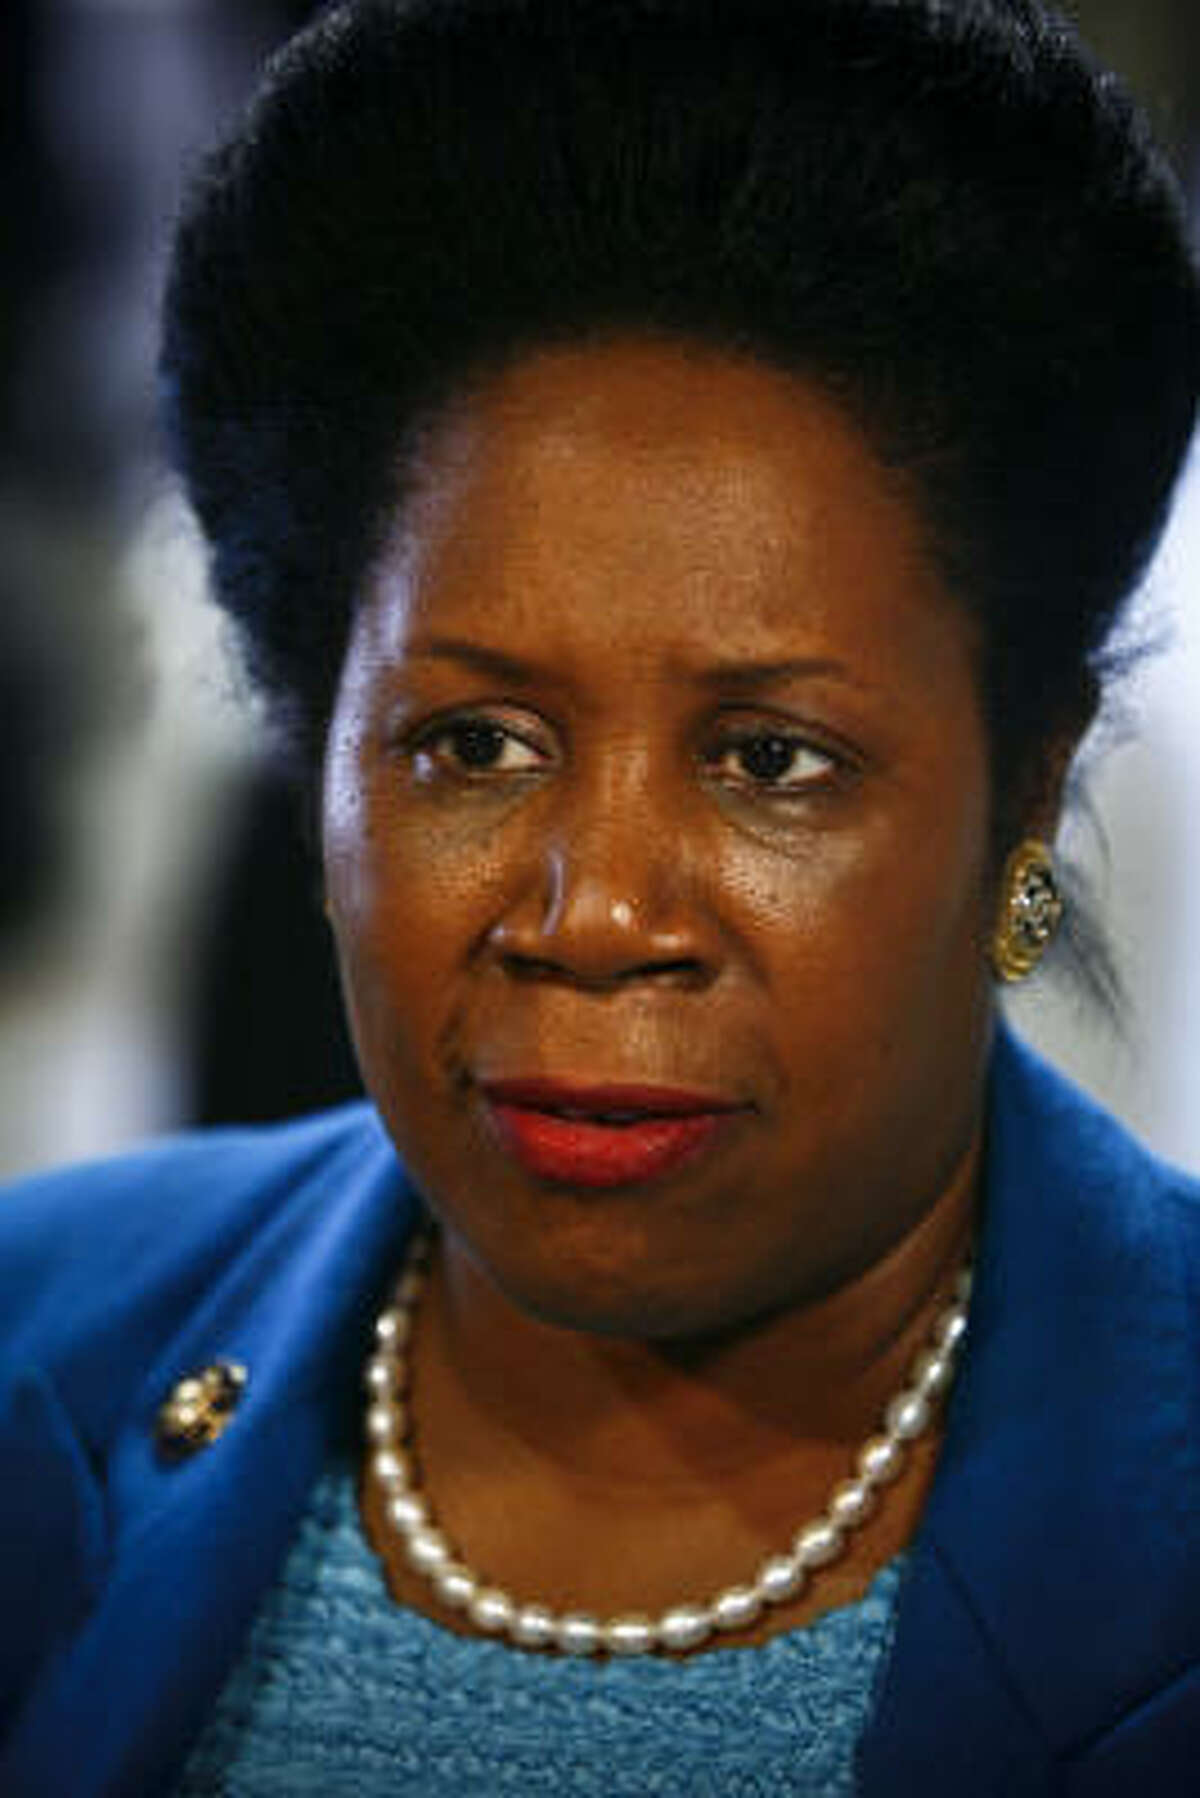 Rep. Sheila Jackson Lee sided with Hillary Clinton in the 2008 Democratic presidential contest.